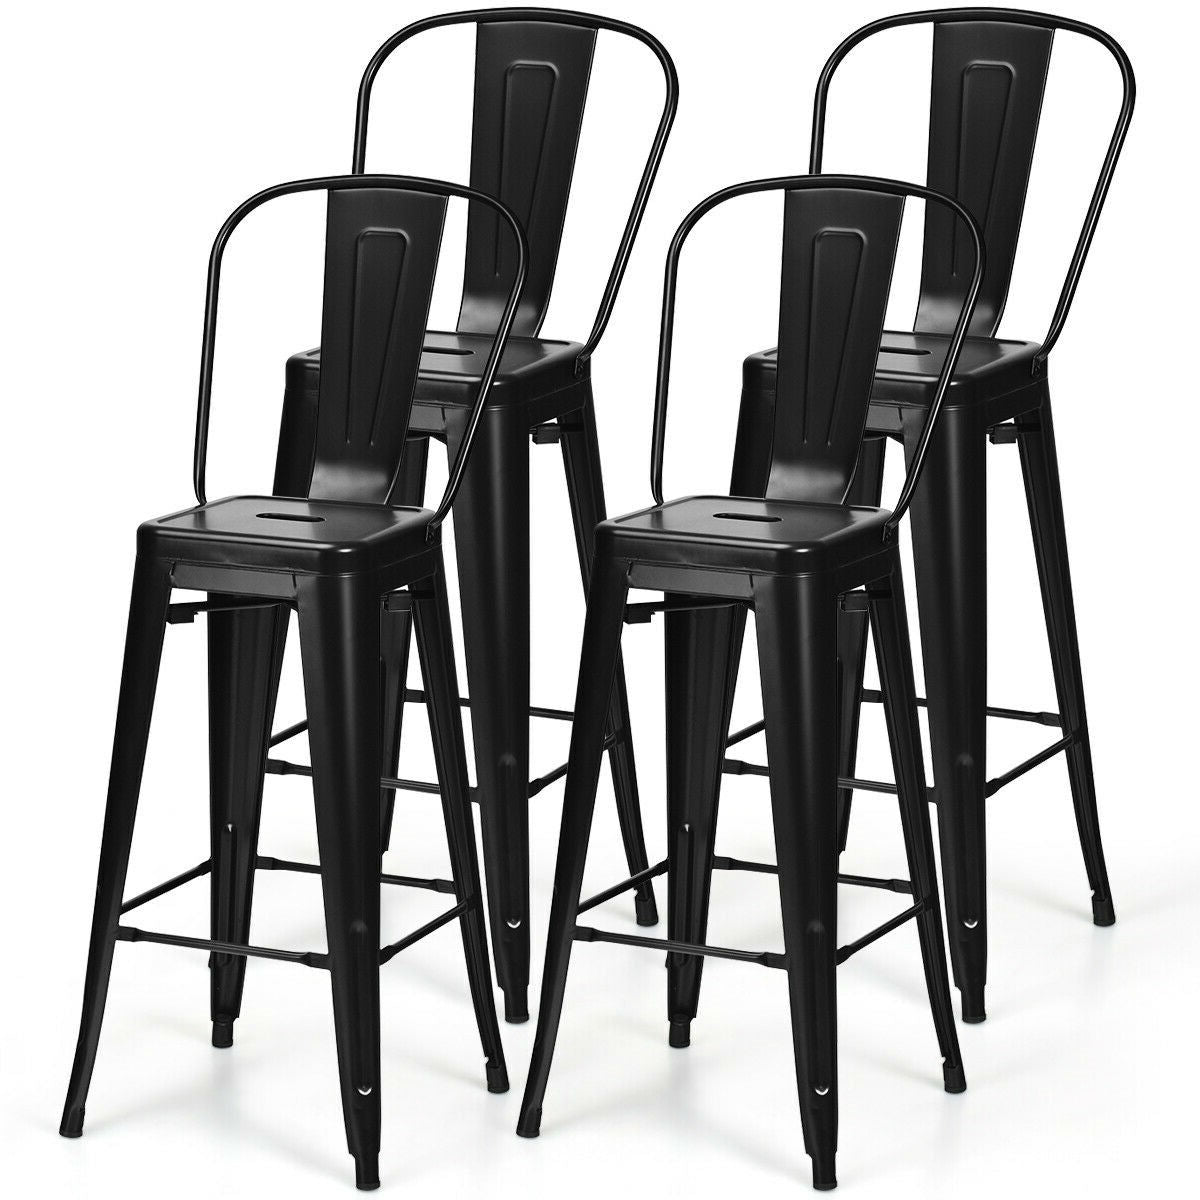 "Set of 4 Black 30"" Height High Back Metal Industrial Bar Stools"